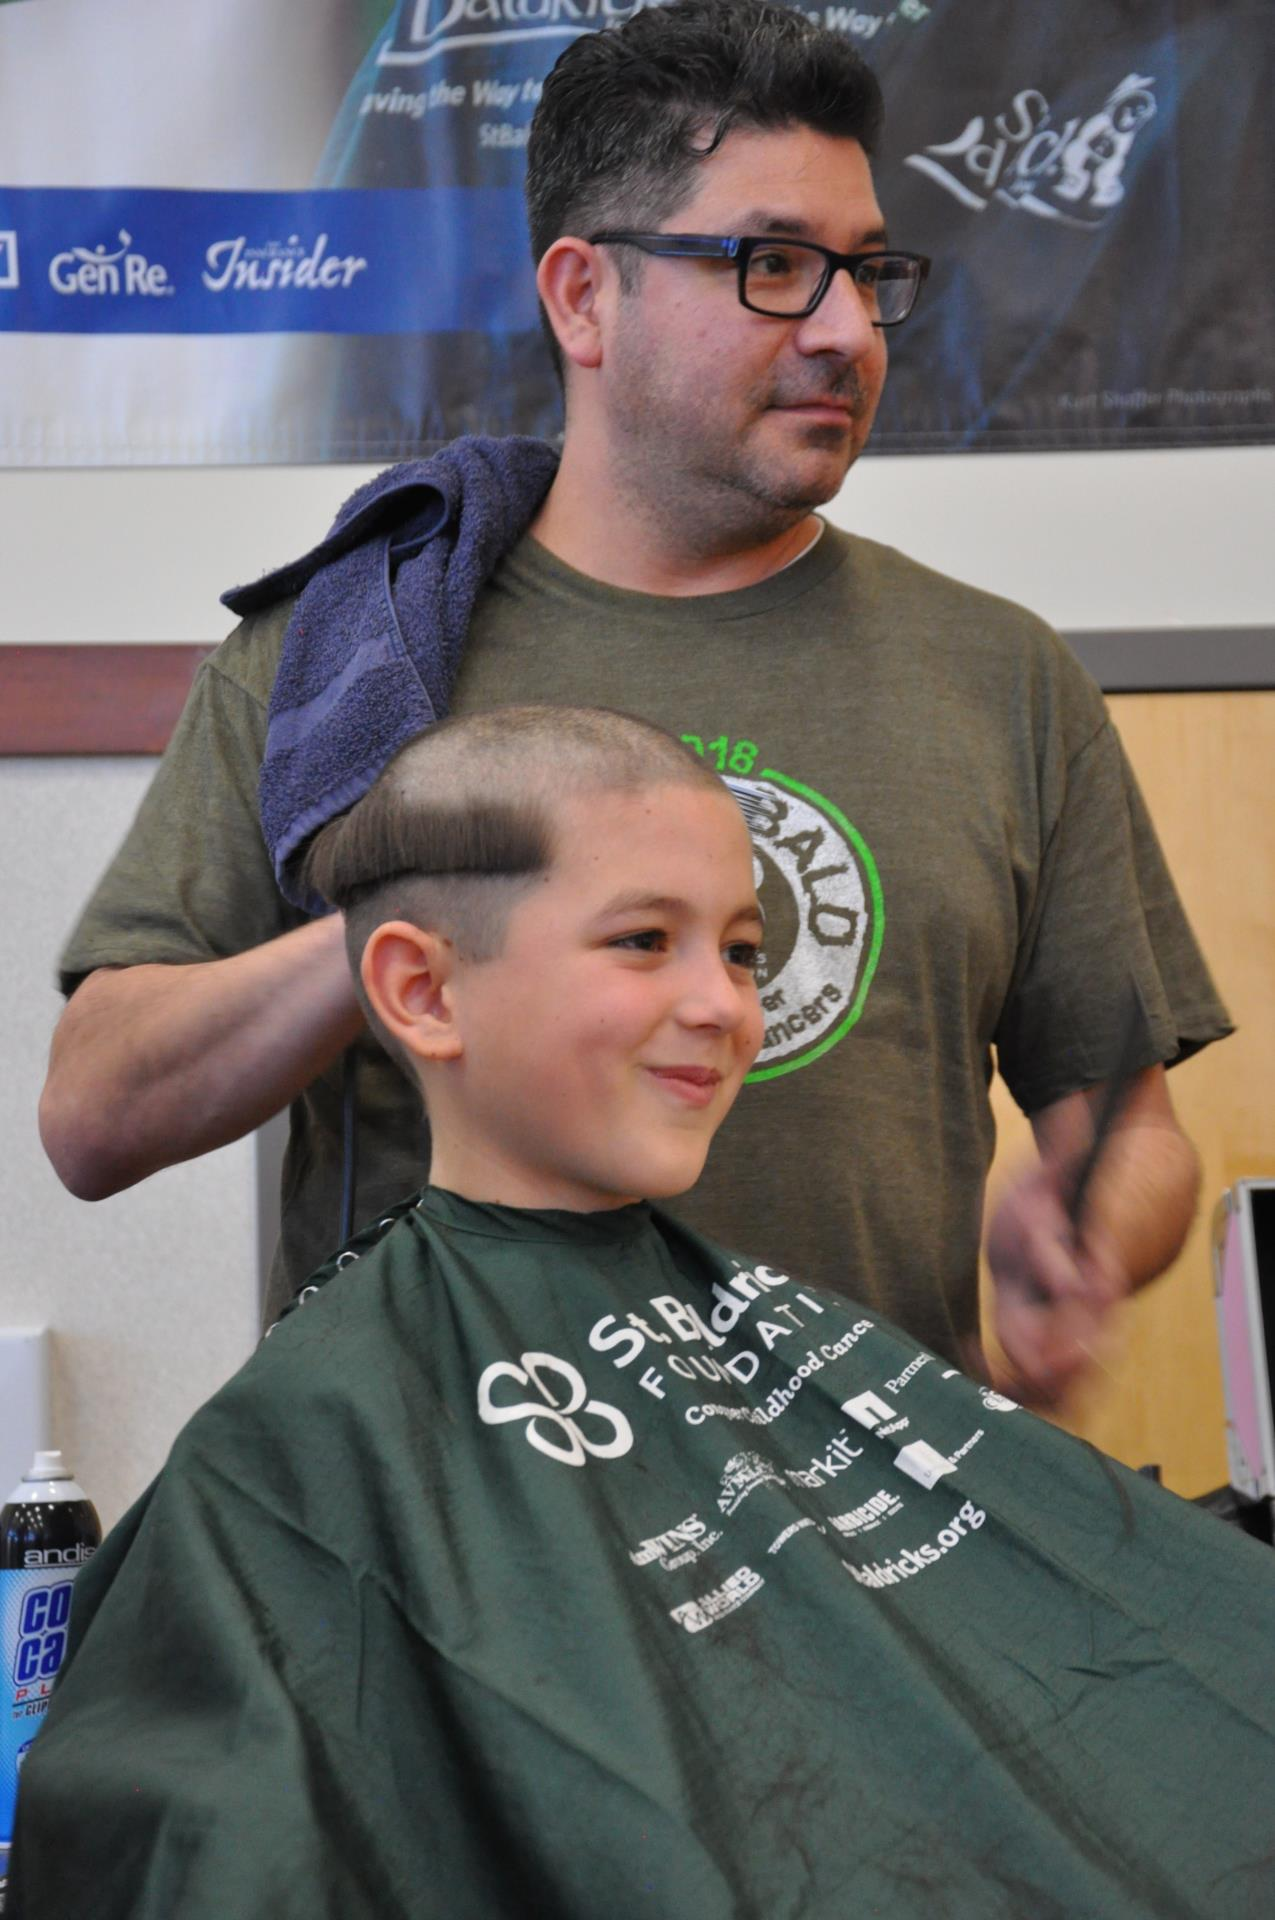 Barber Alex Quintana jokes with the parents of RoxEl 4th grader Jude West, mid-shave